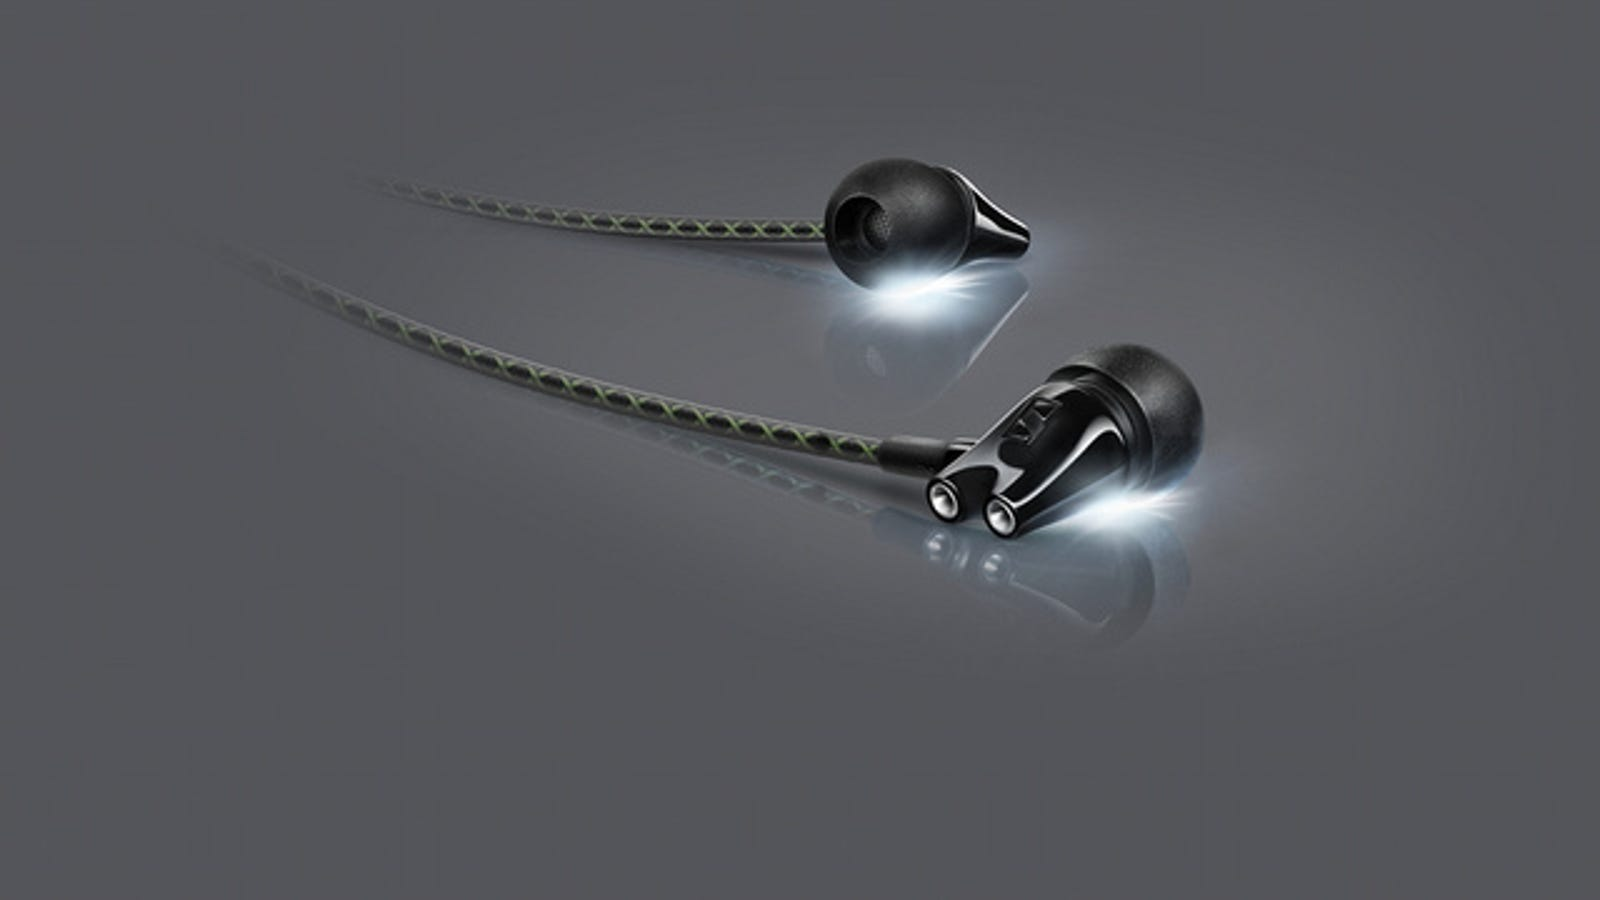 ear buds anti-age set - The Most Intense Ear Buds Sennheiser Has Ever Made